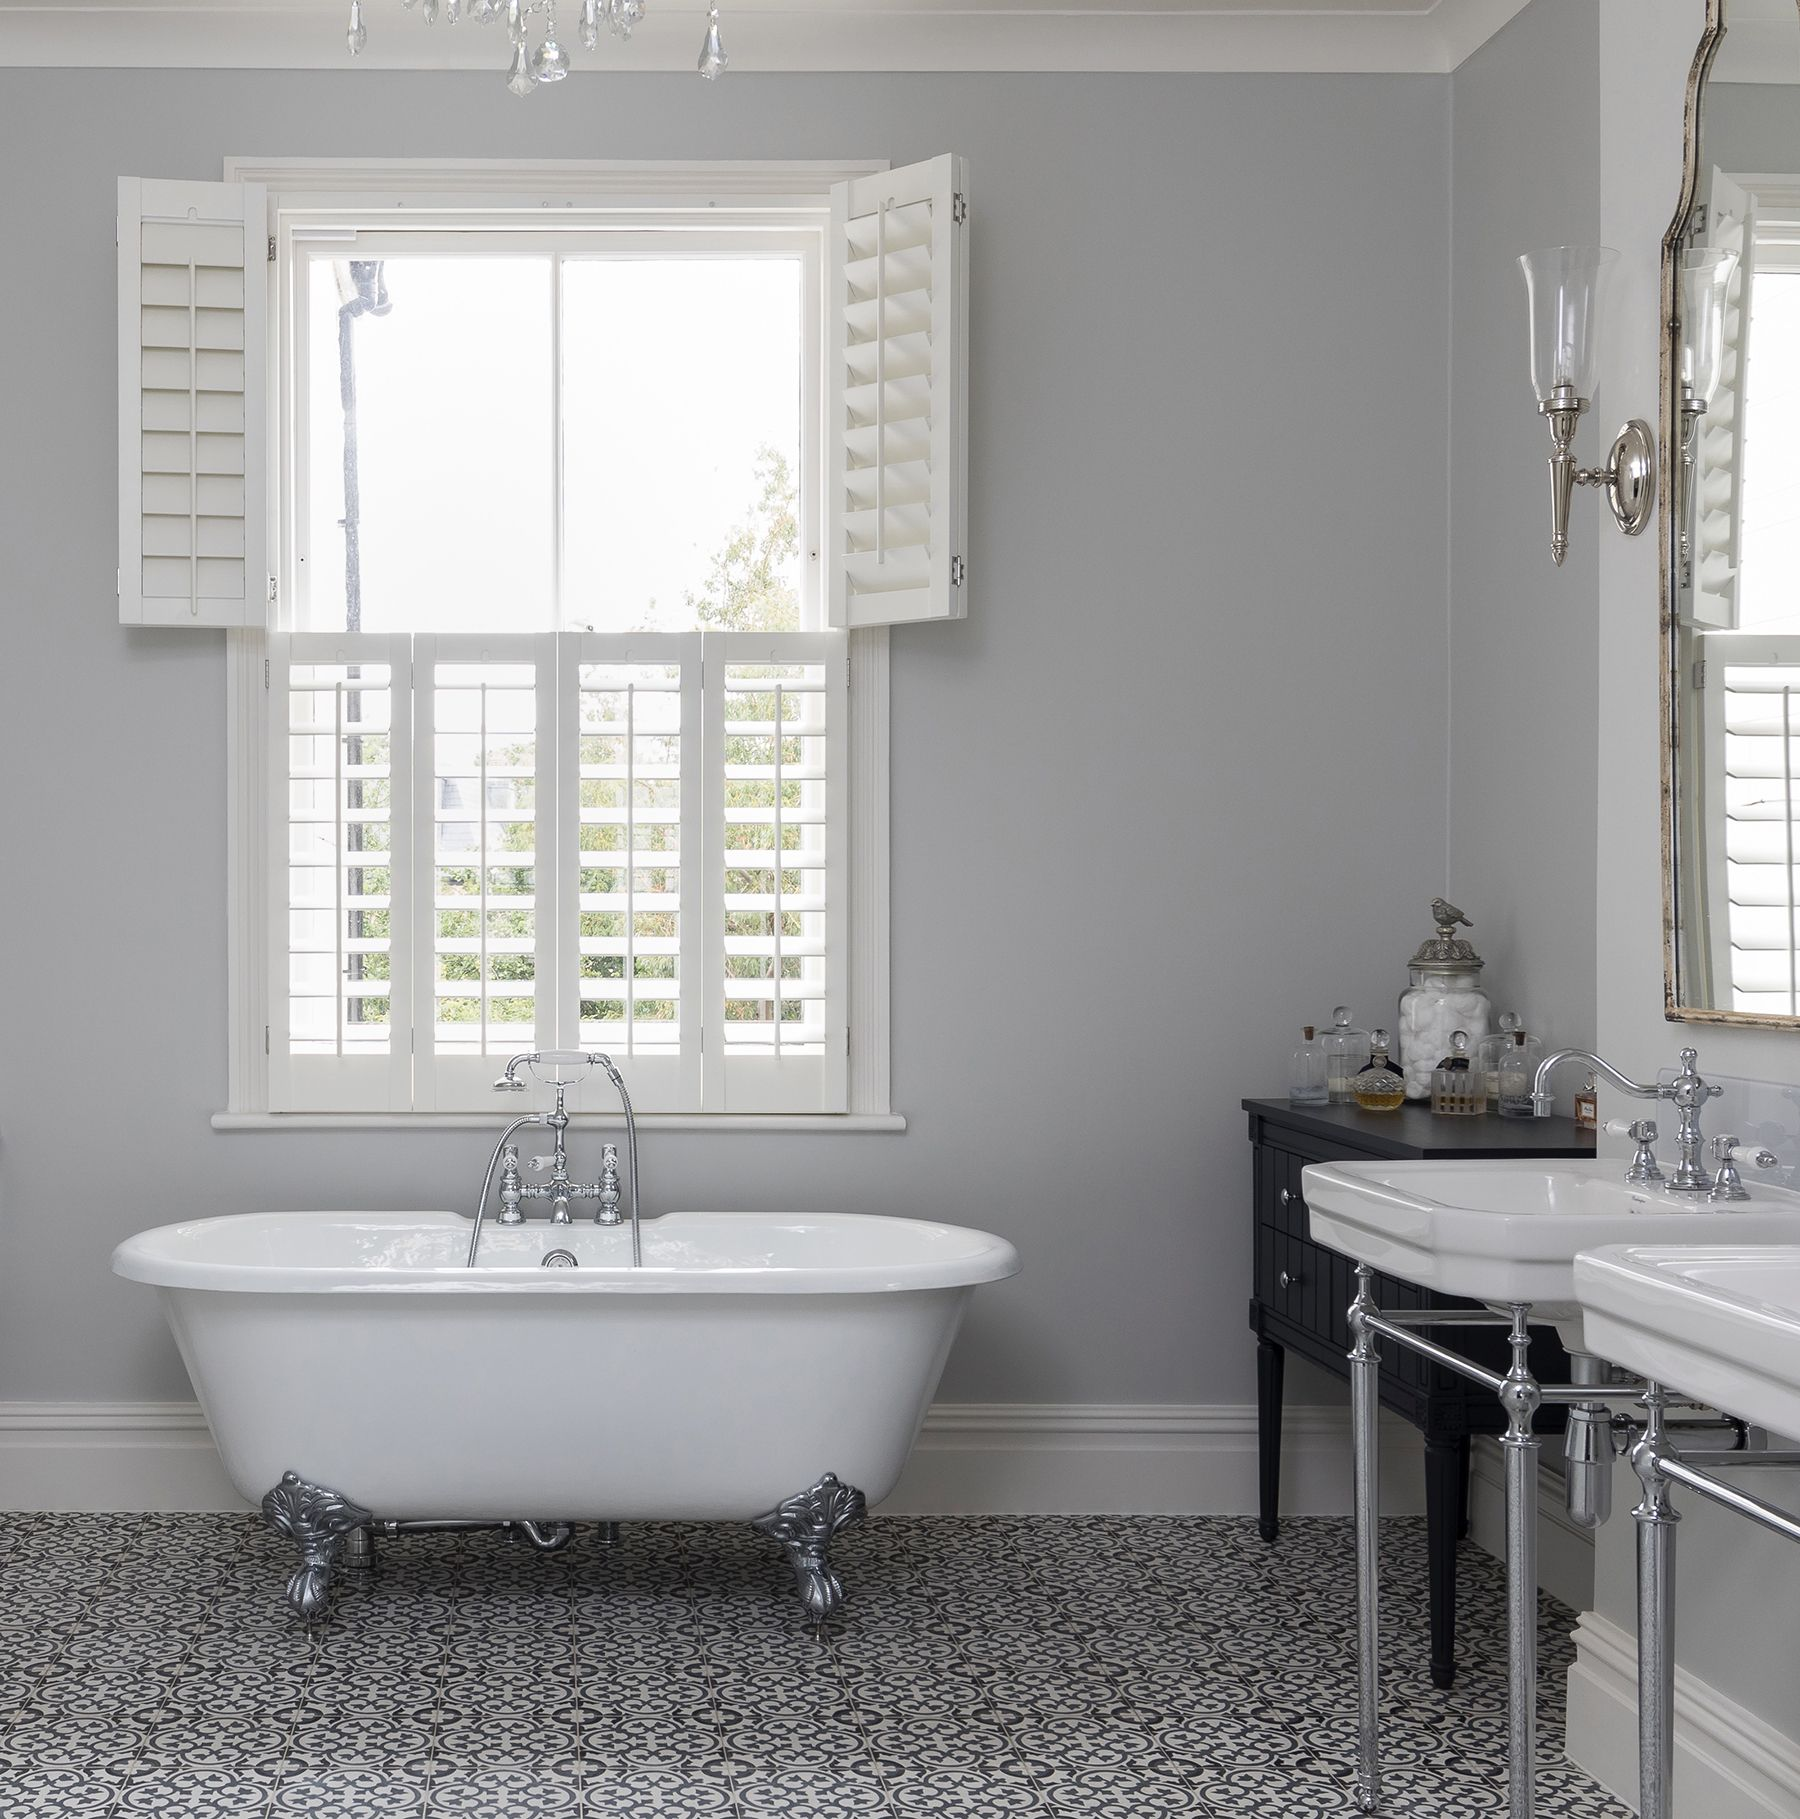 Tnesc - White Plantation Shutters Tier On Tier Style Is